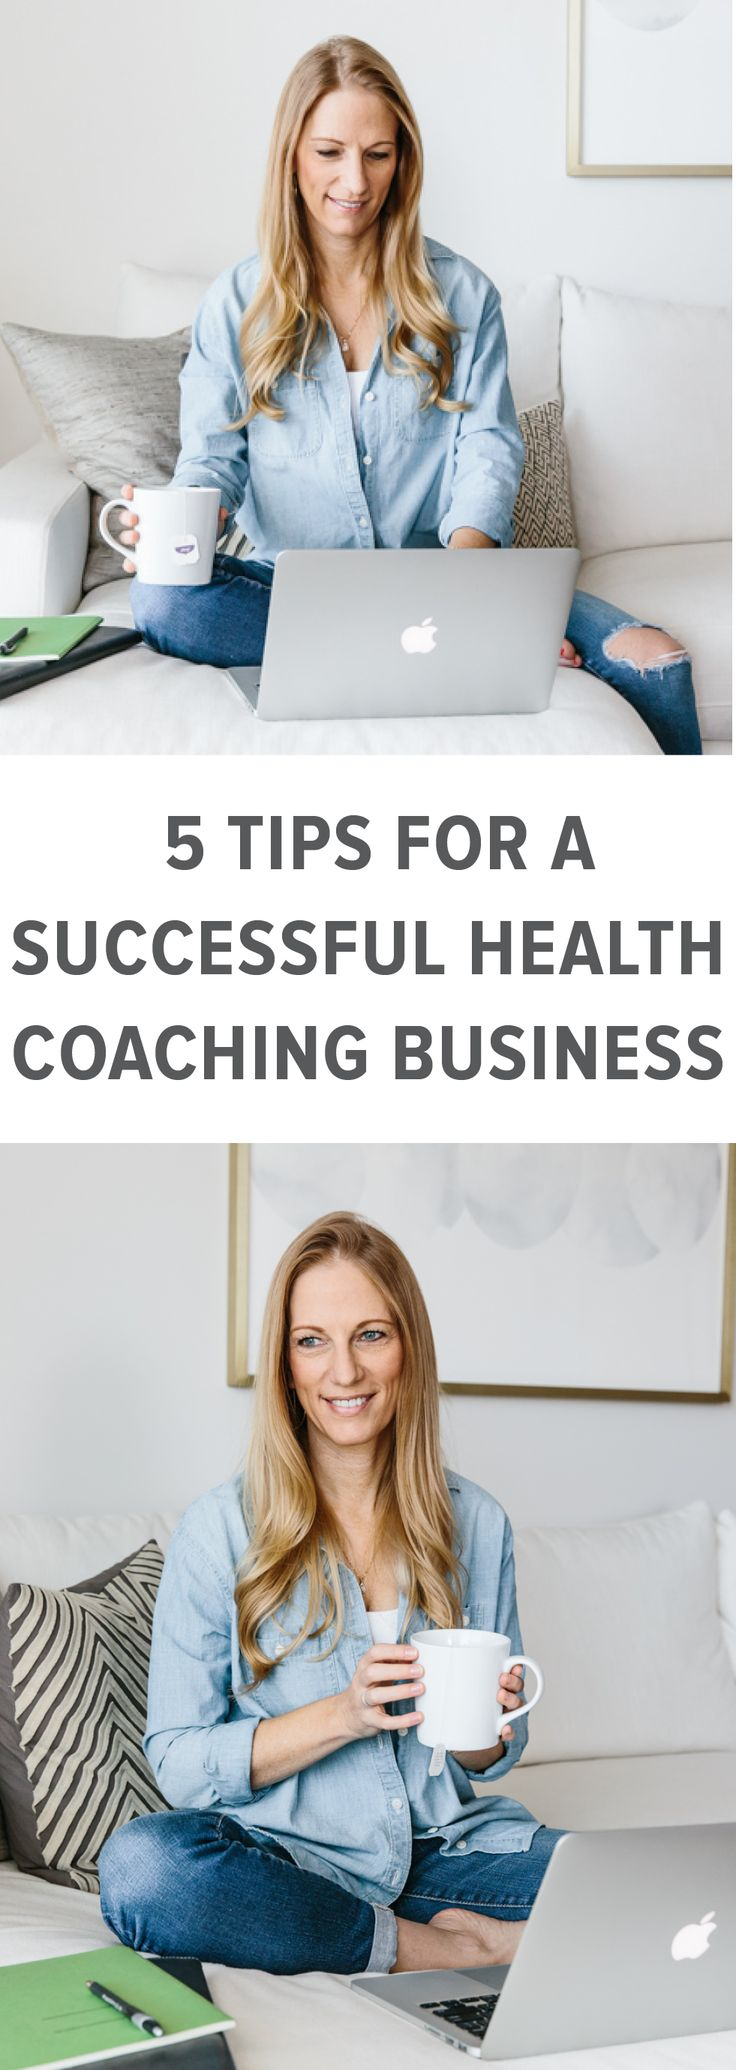 As a health coach who's been able to create a rewarding and successful health coaching business in just three years, I have 5 tips for success to share. #healthcoaching #healthcoach #healthcoachbusiness